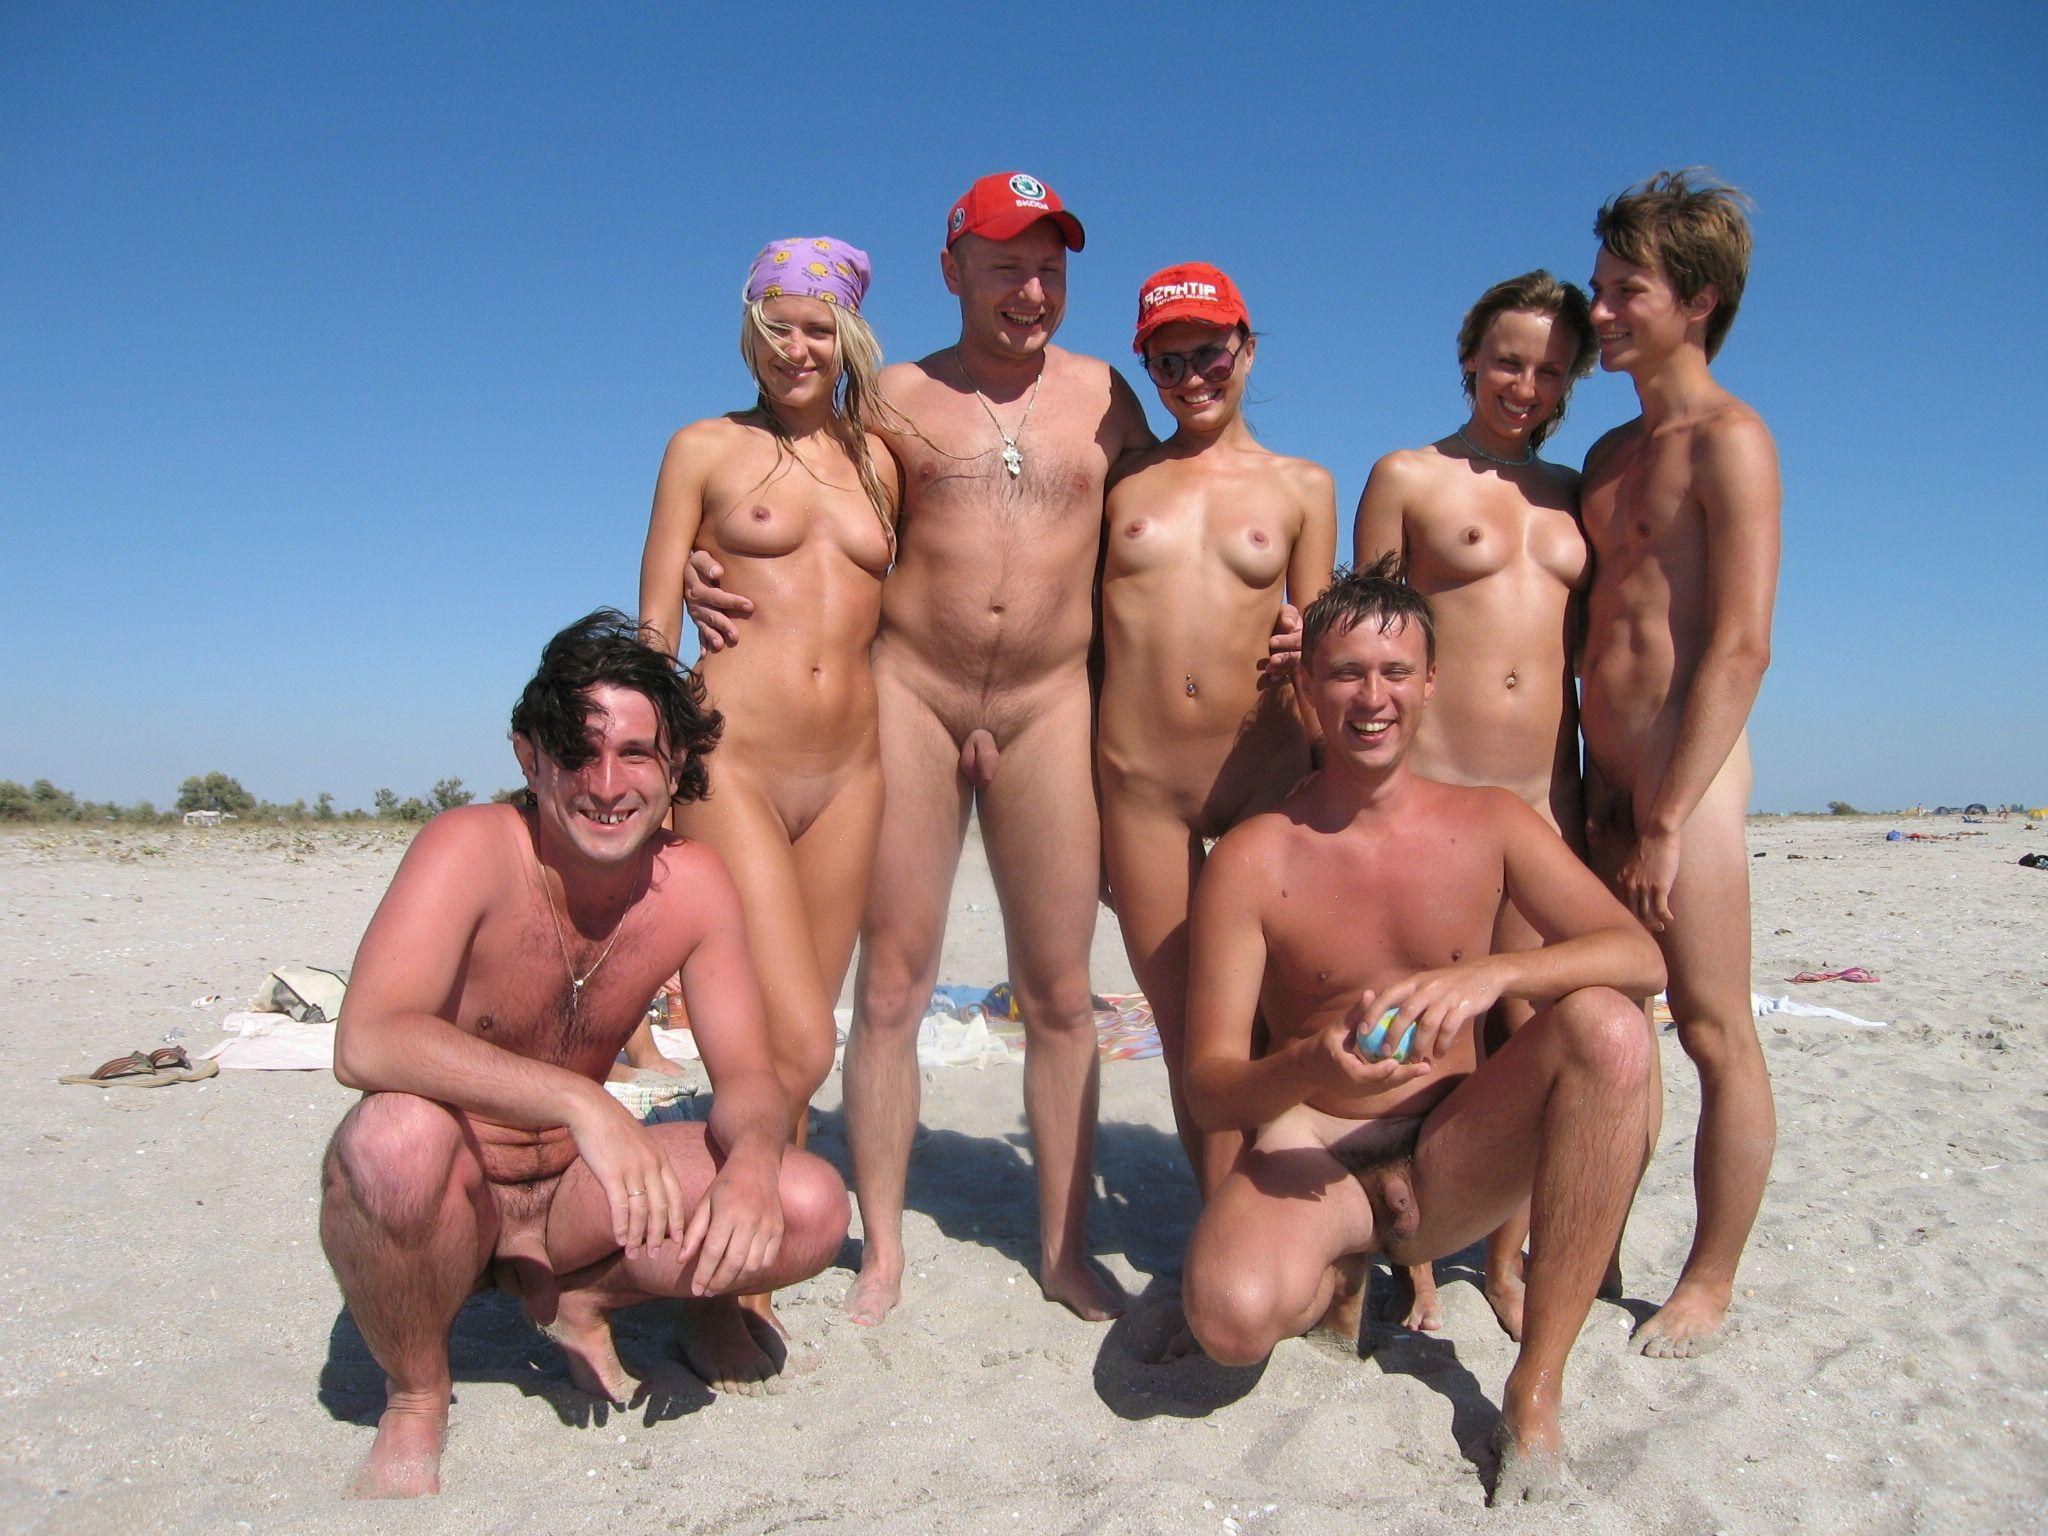 http://upload.wikimedia.org/wikipedia/commons/a/a2/At_the_nudist_beach.jpg